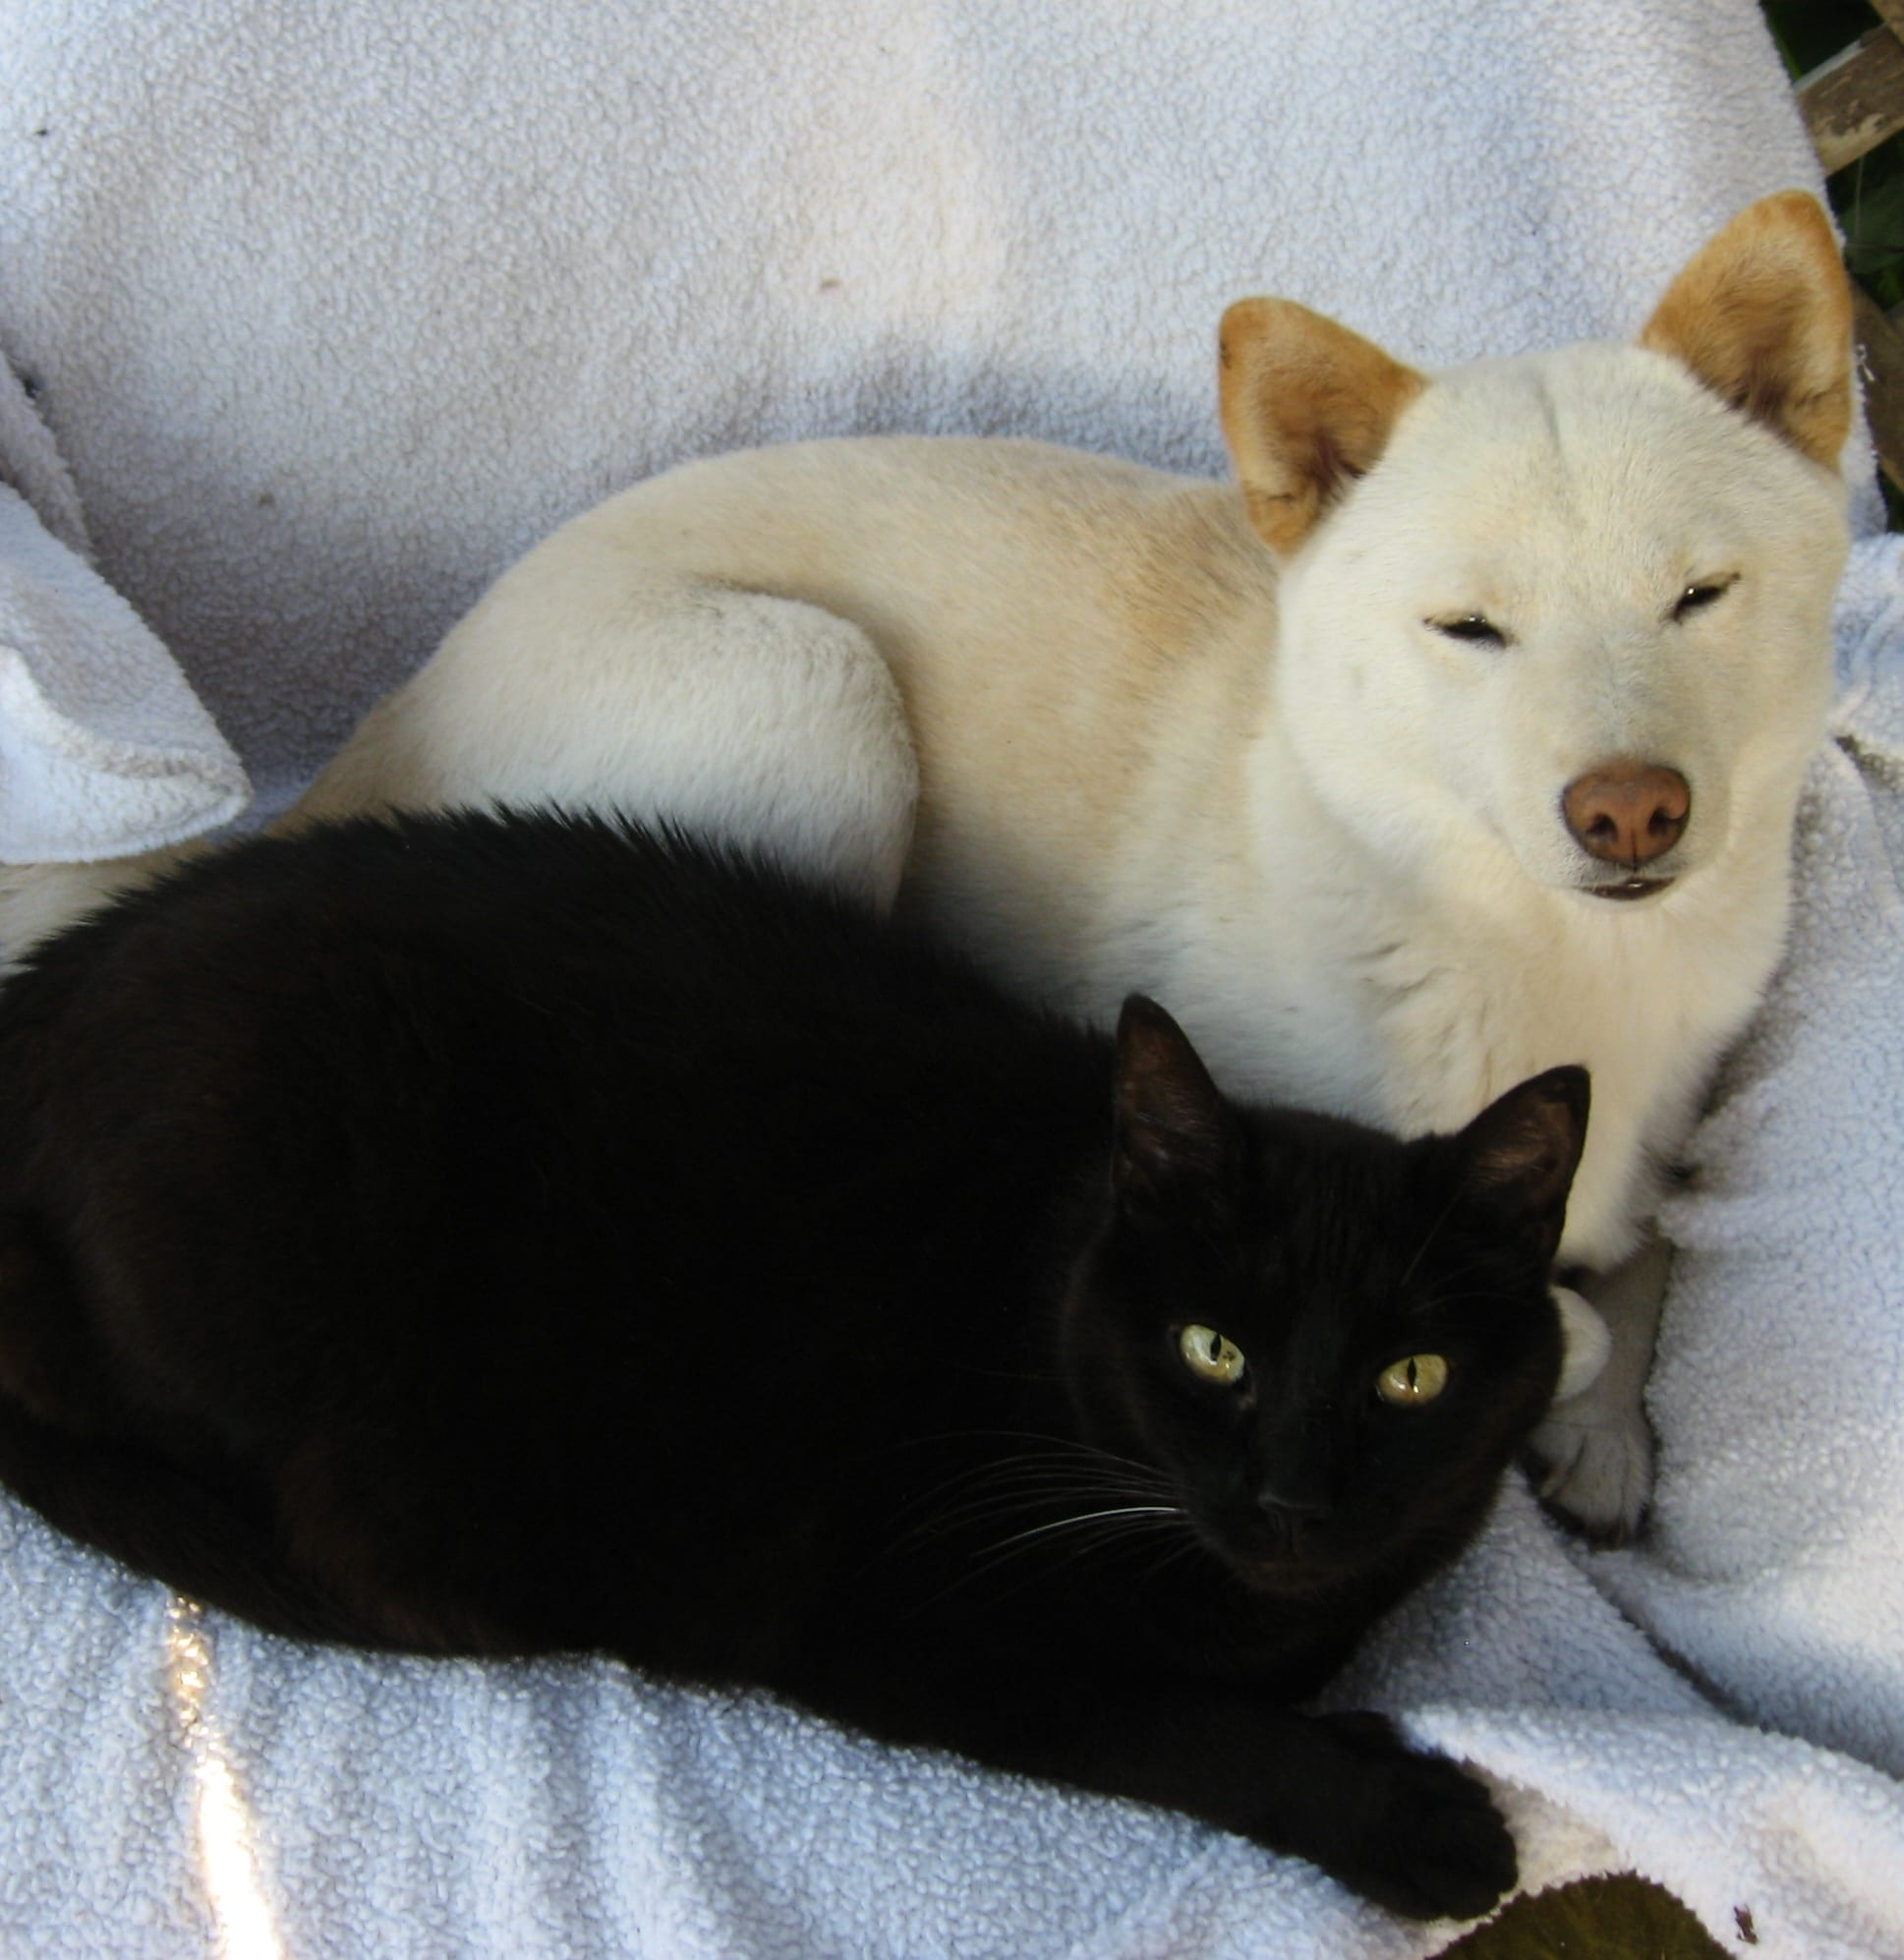 shelter cats and shelter dogs